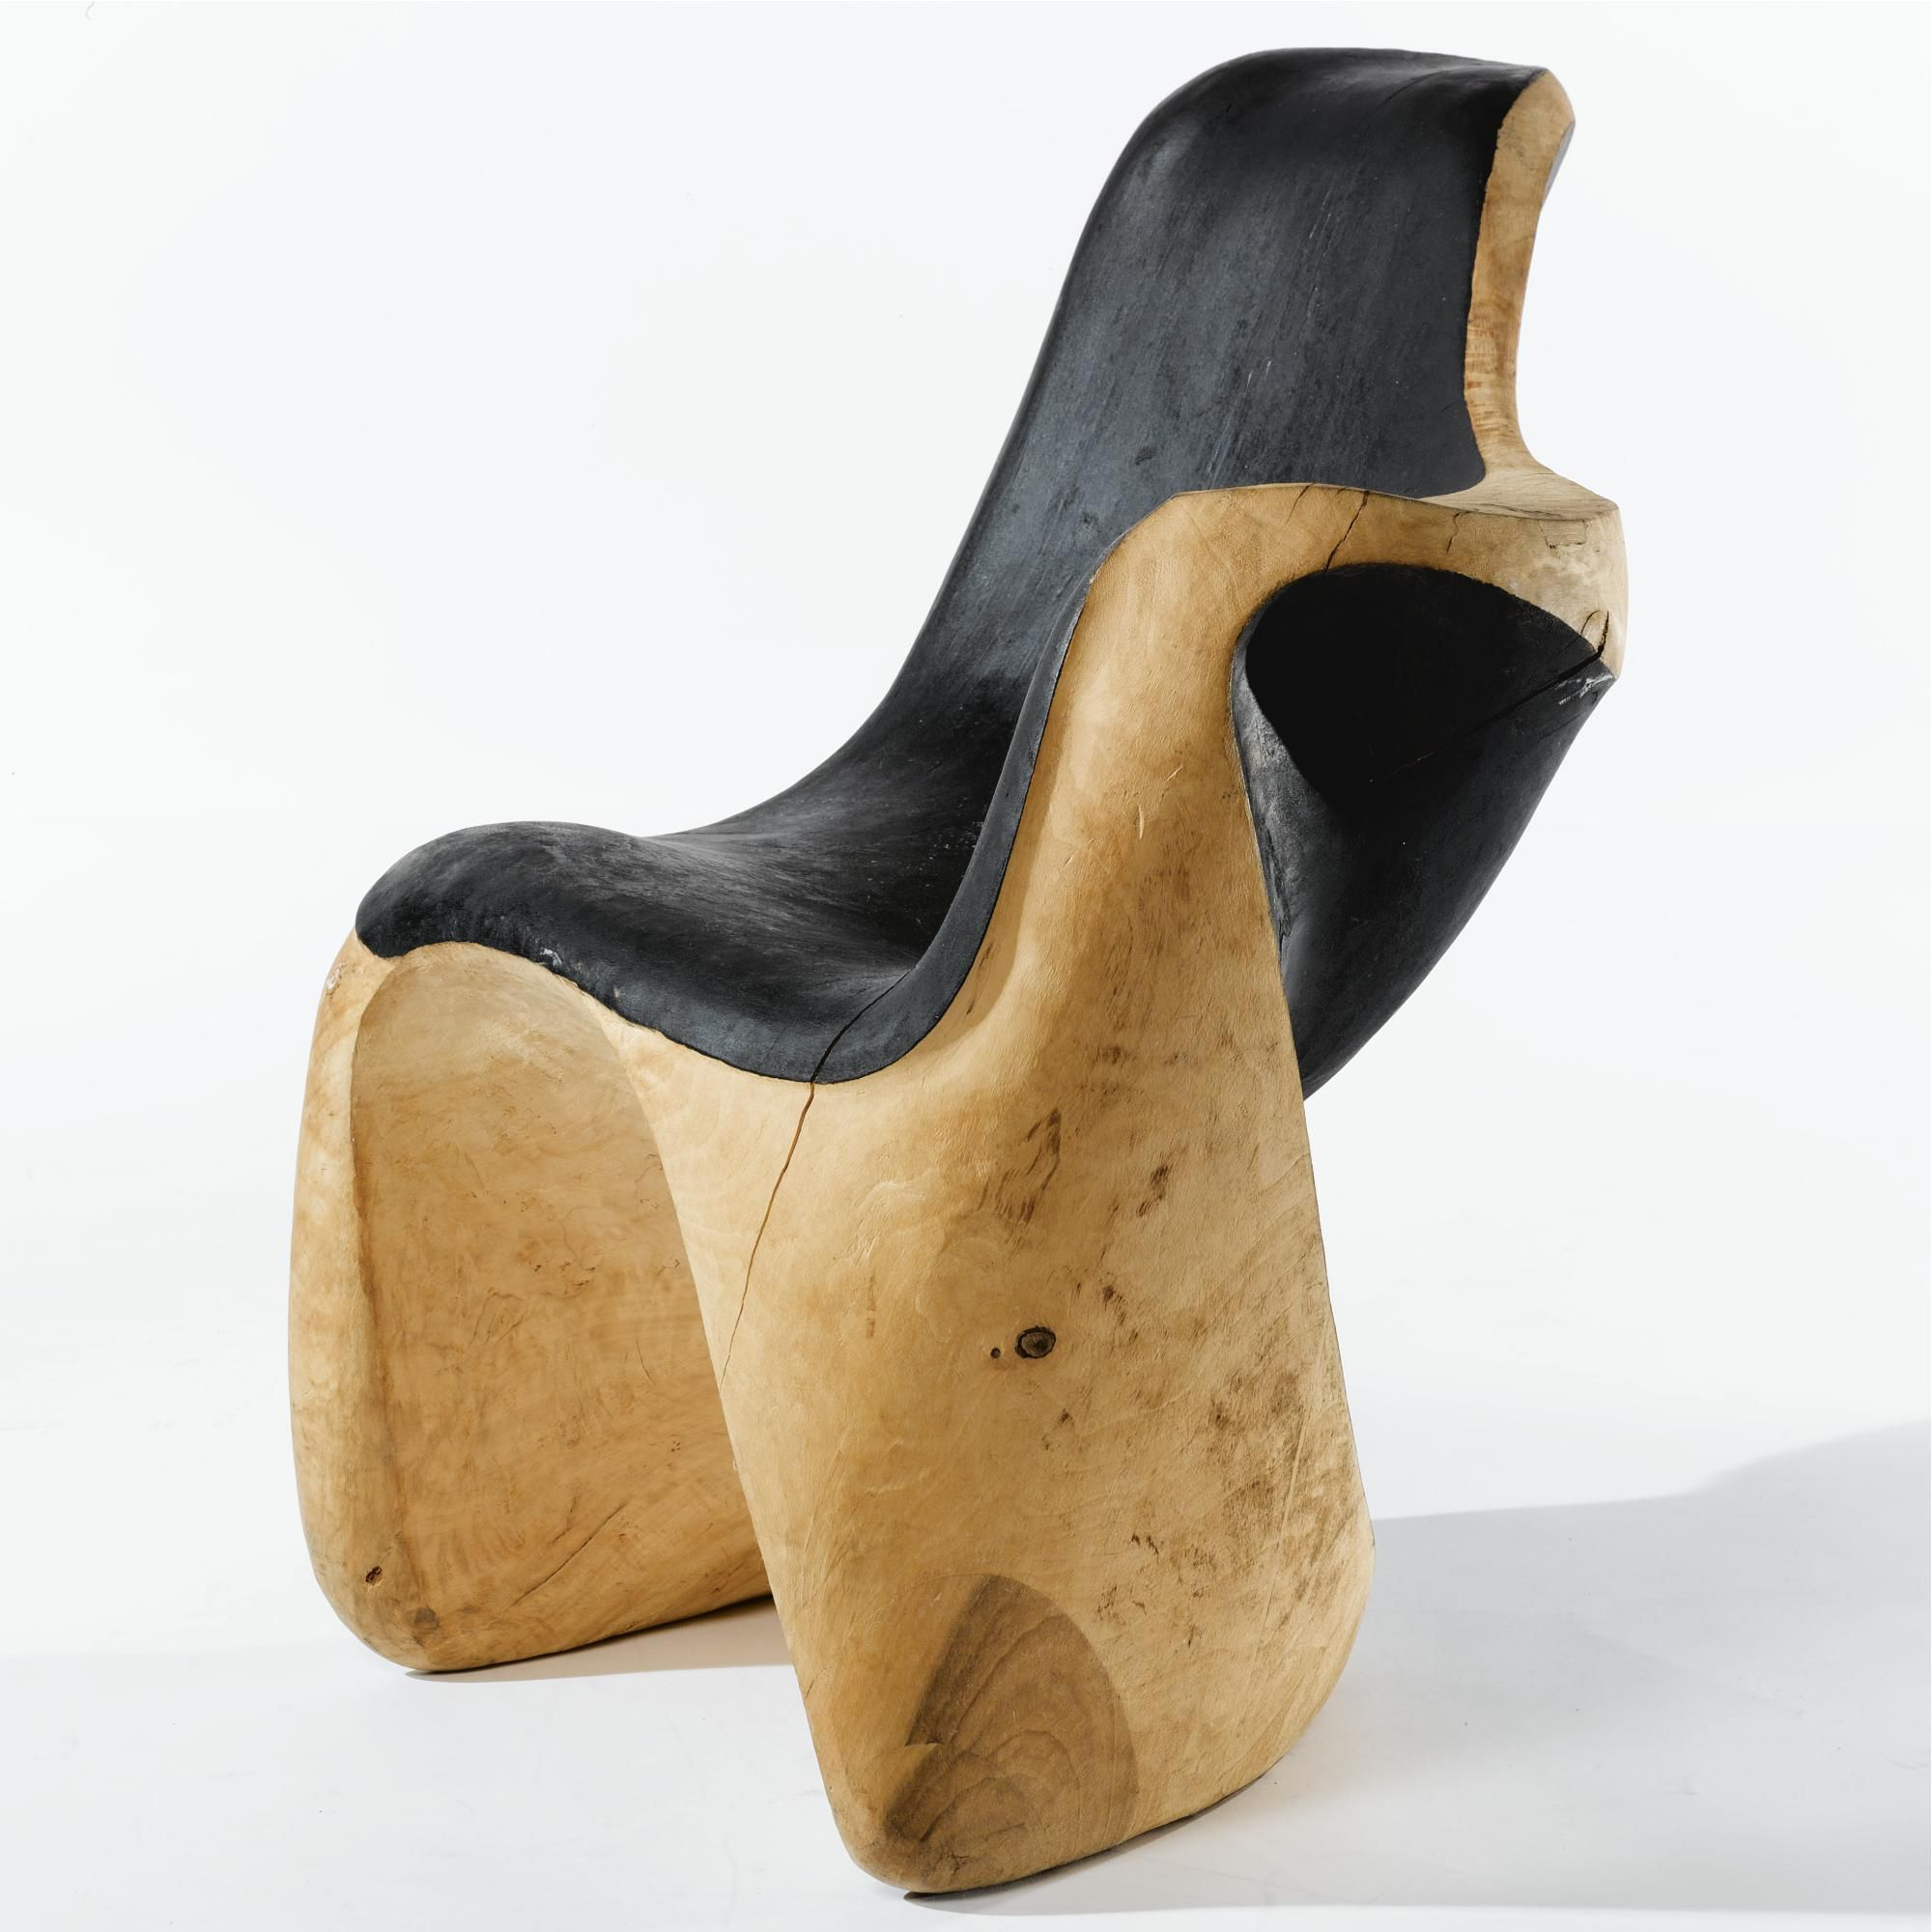 Mario DalFabbro; Carved and Partially Lacquered Wood Chair, 1970-1984.